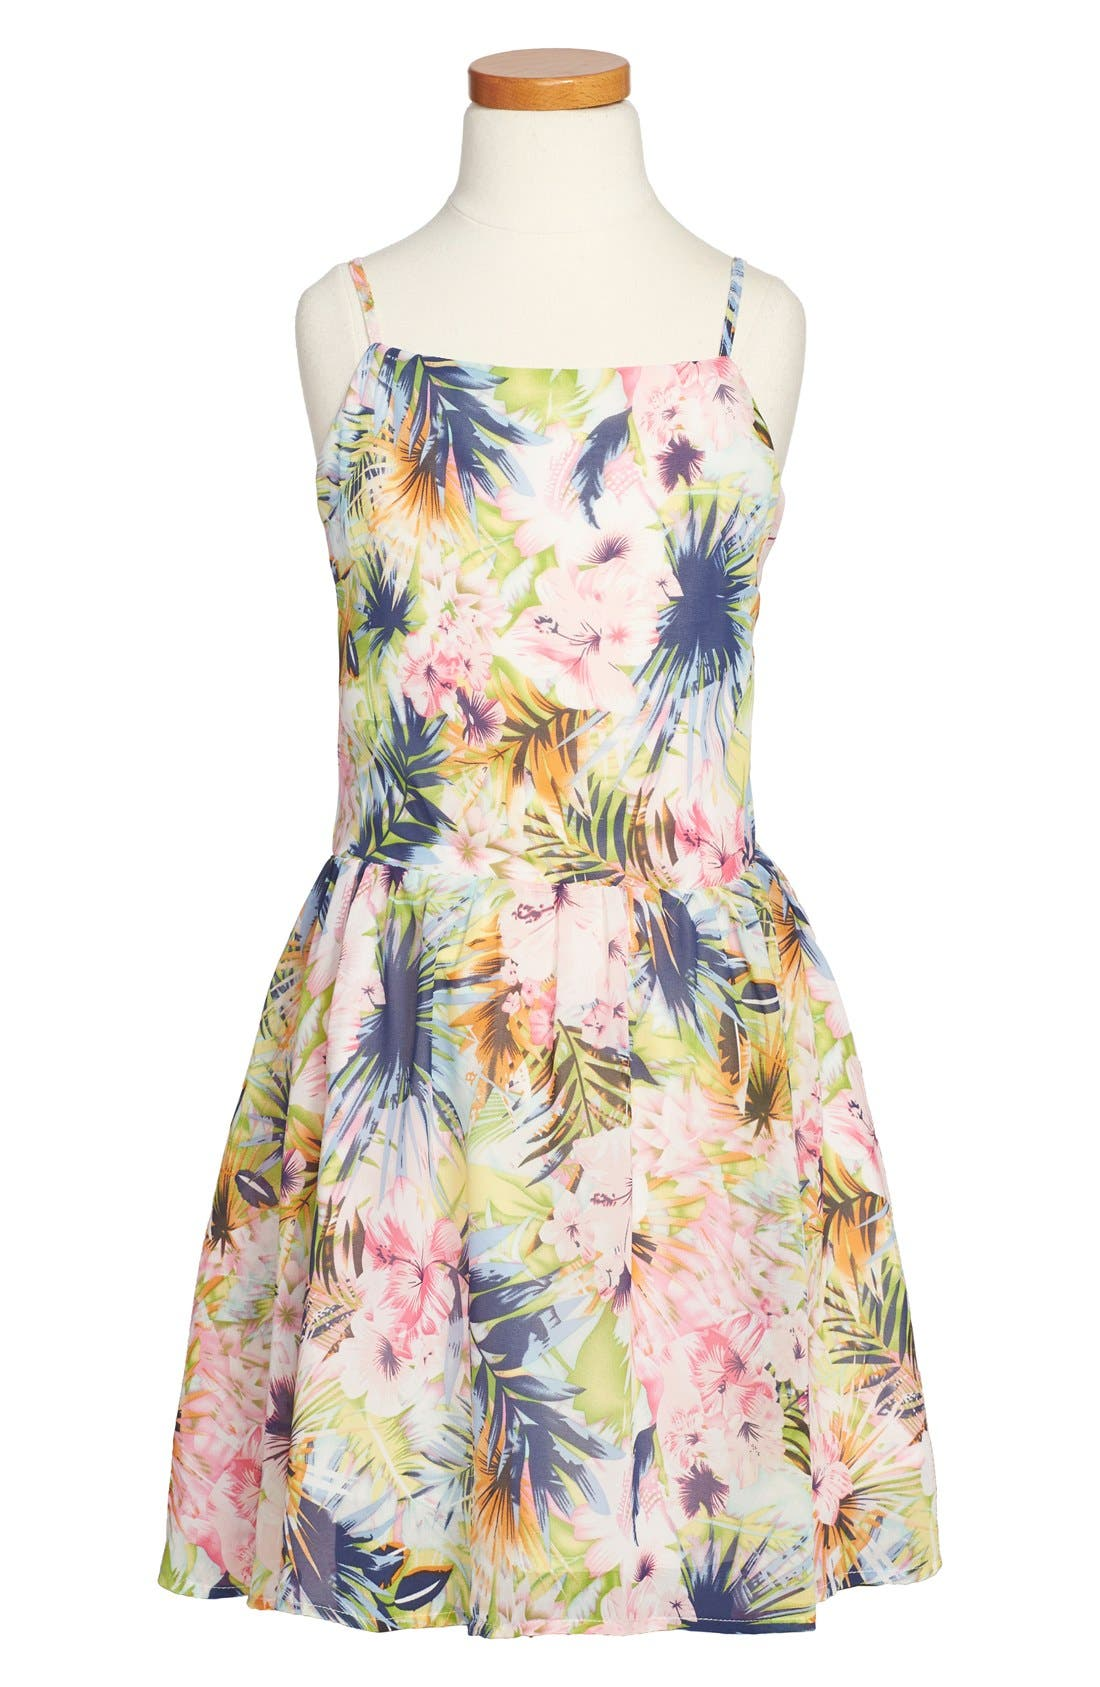 Alternate Image 1 Selected - Miss Behave 'Laurie' Floral Print Sleeveless Dress (Big Girls)